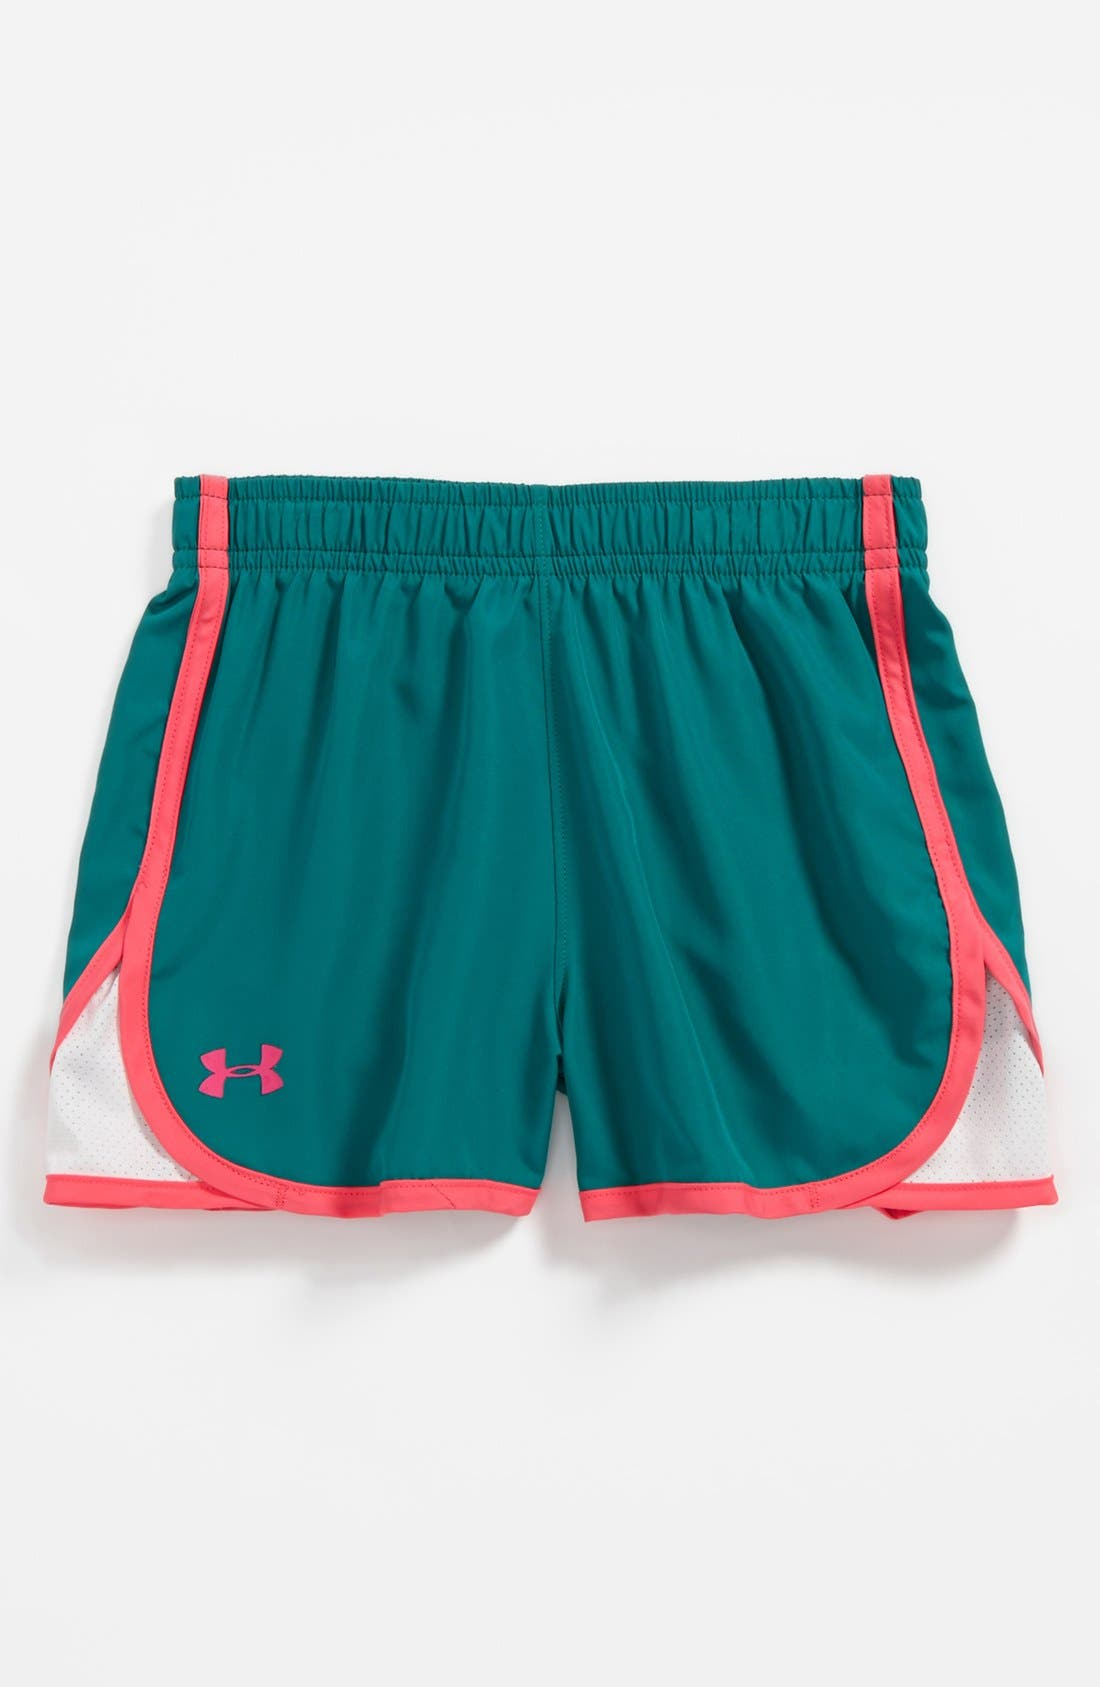 Alternate Image 1 Selected - Under Armour 'Escape' Shorts (Little Girls)